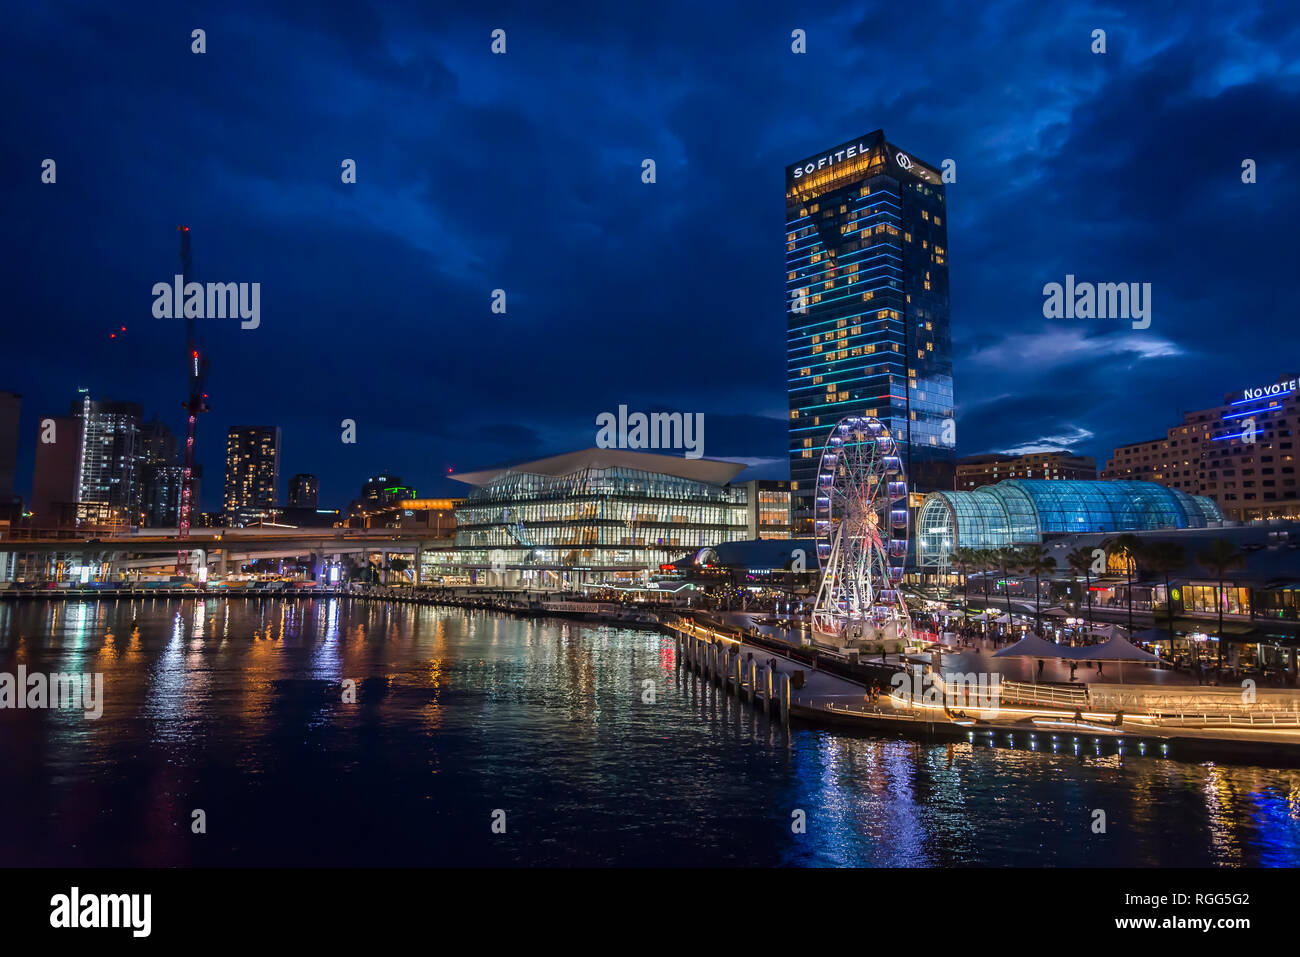 View of Darling Harbour at night with Sofitel Hotel, Sydney, NSW, Australia - Stock Image